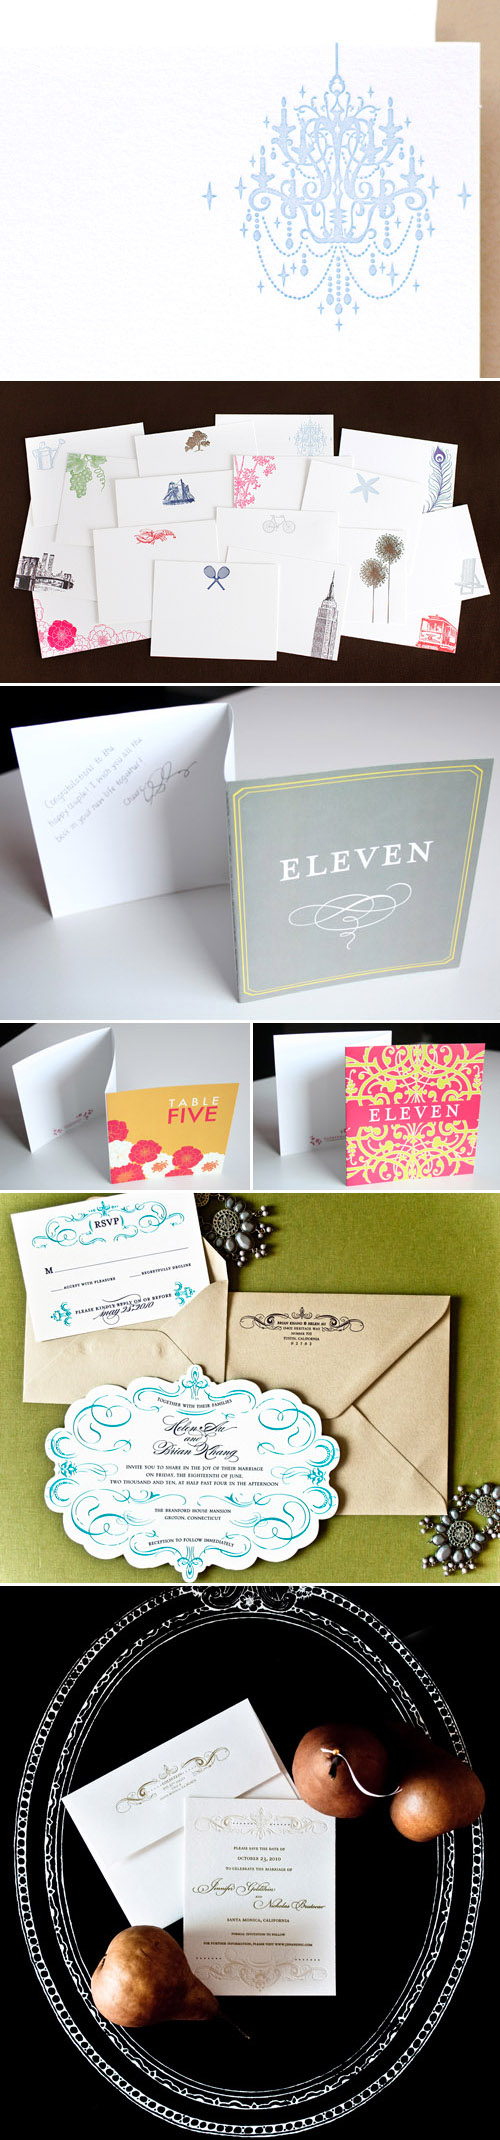 personalized notecards, thank you cards, custom wedding invitations and table numbers from Papeterie